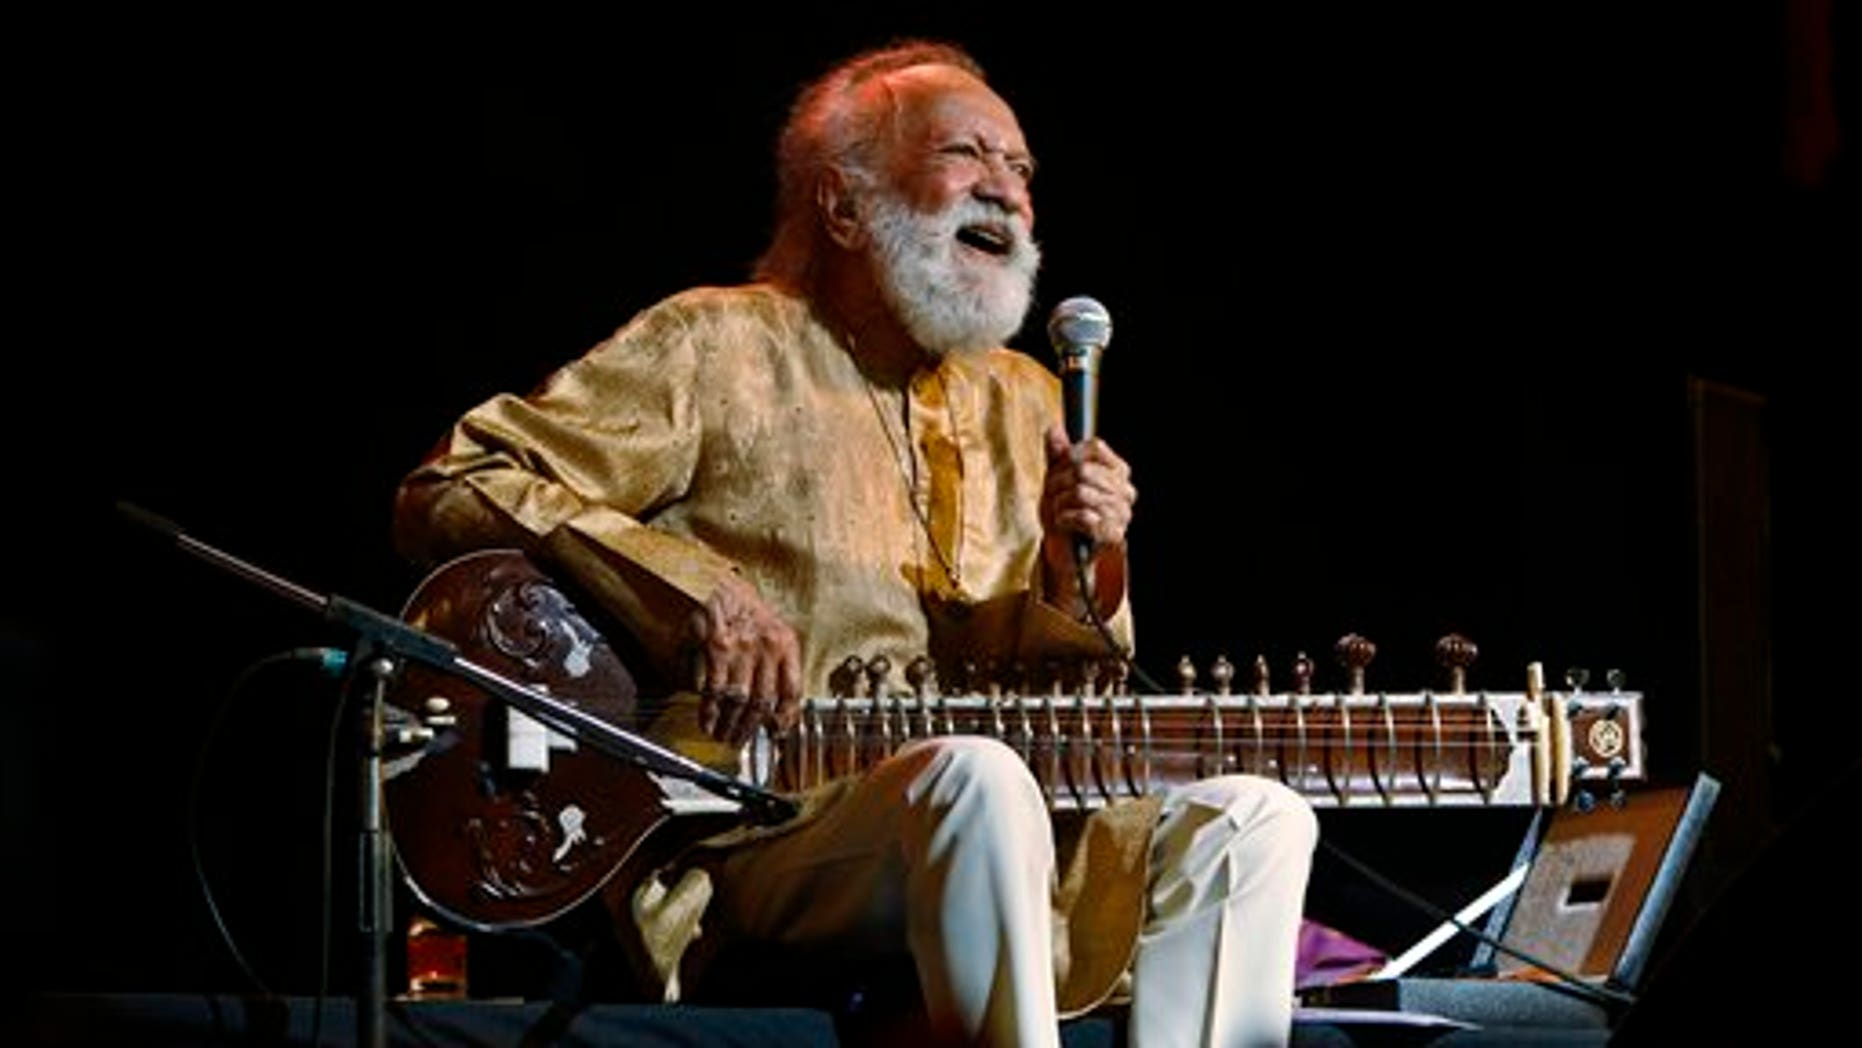 Feb. 7, 2012: Indian musician and sitar maestro Pandit Ravi Shankar, 92, performs during a concert in Bangalore, India.